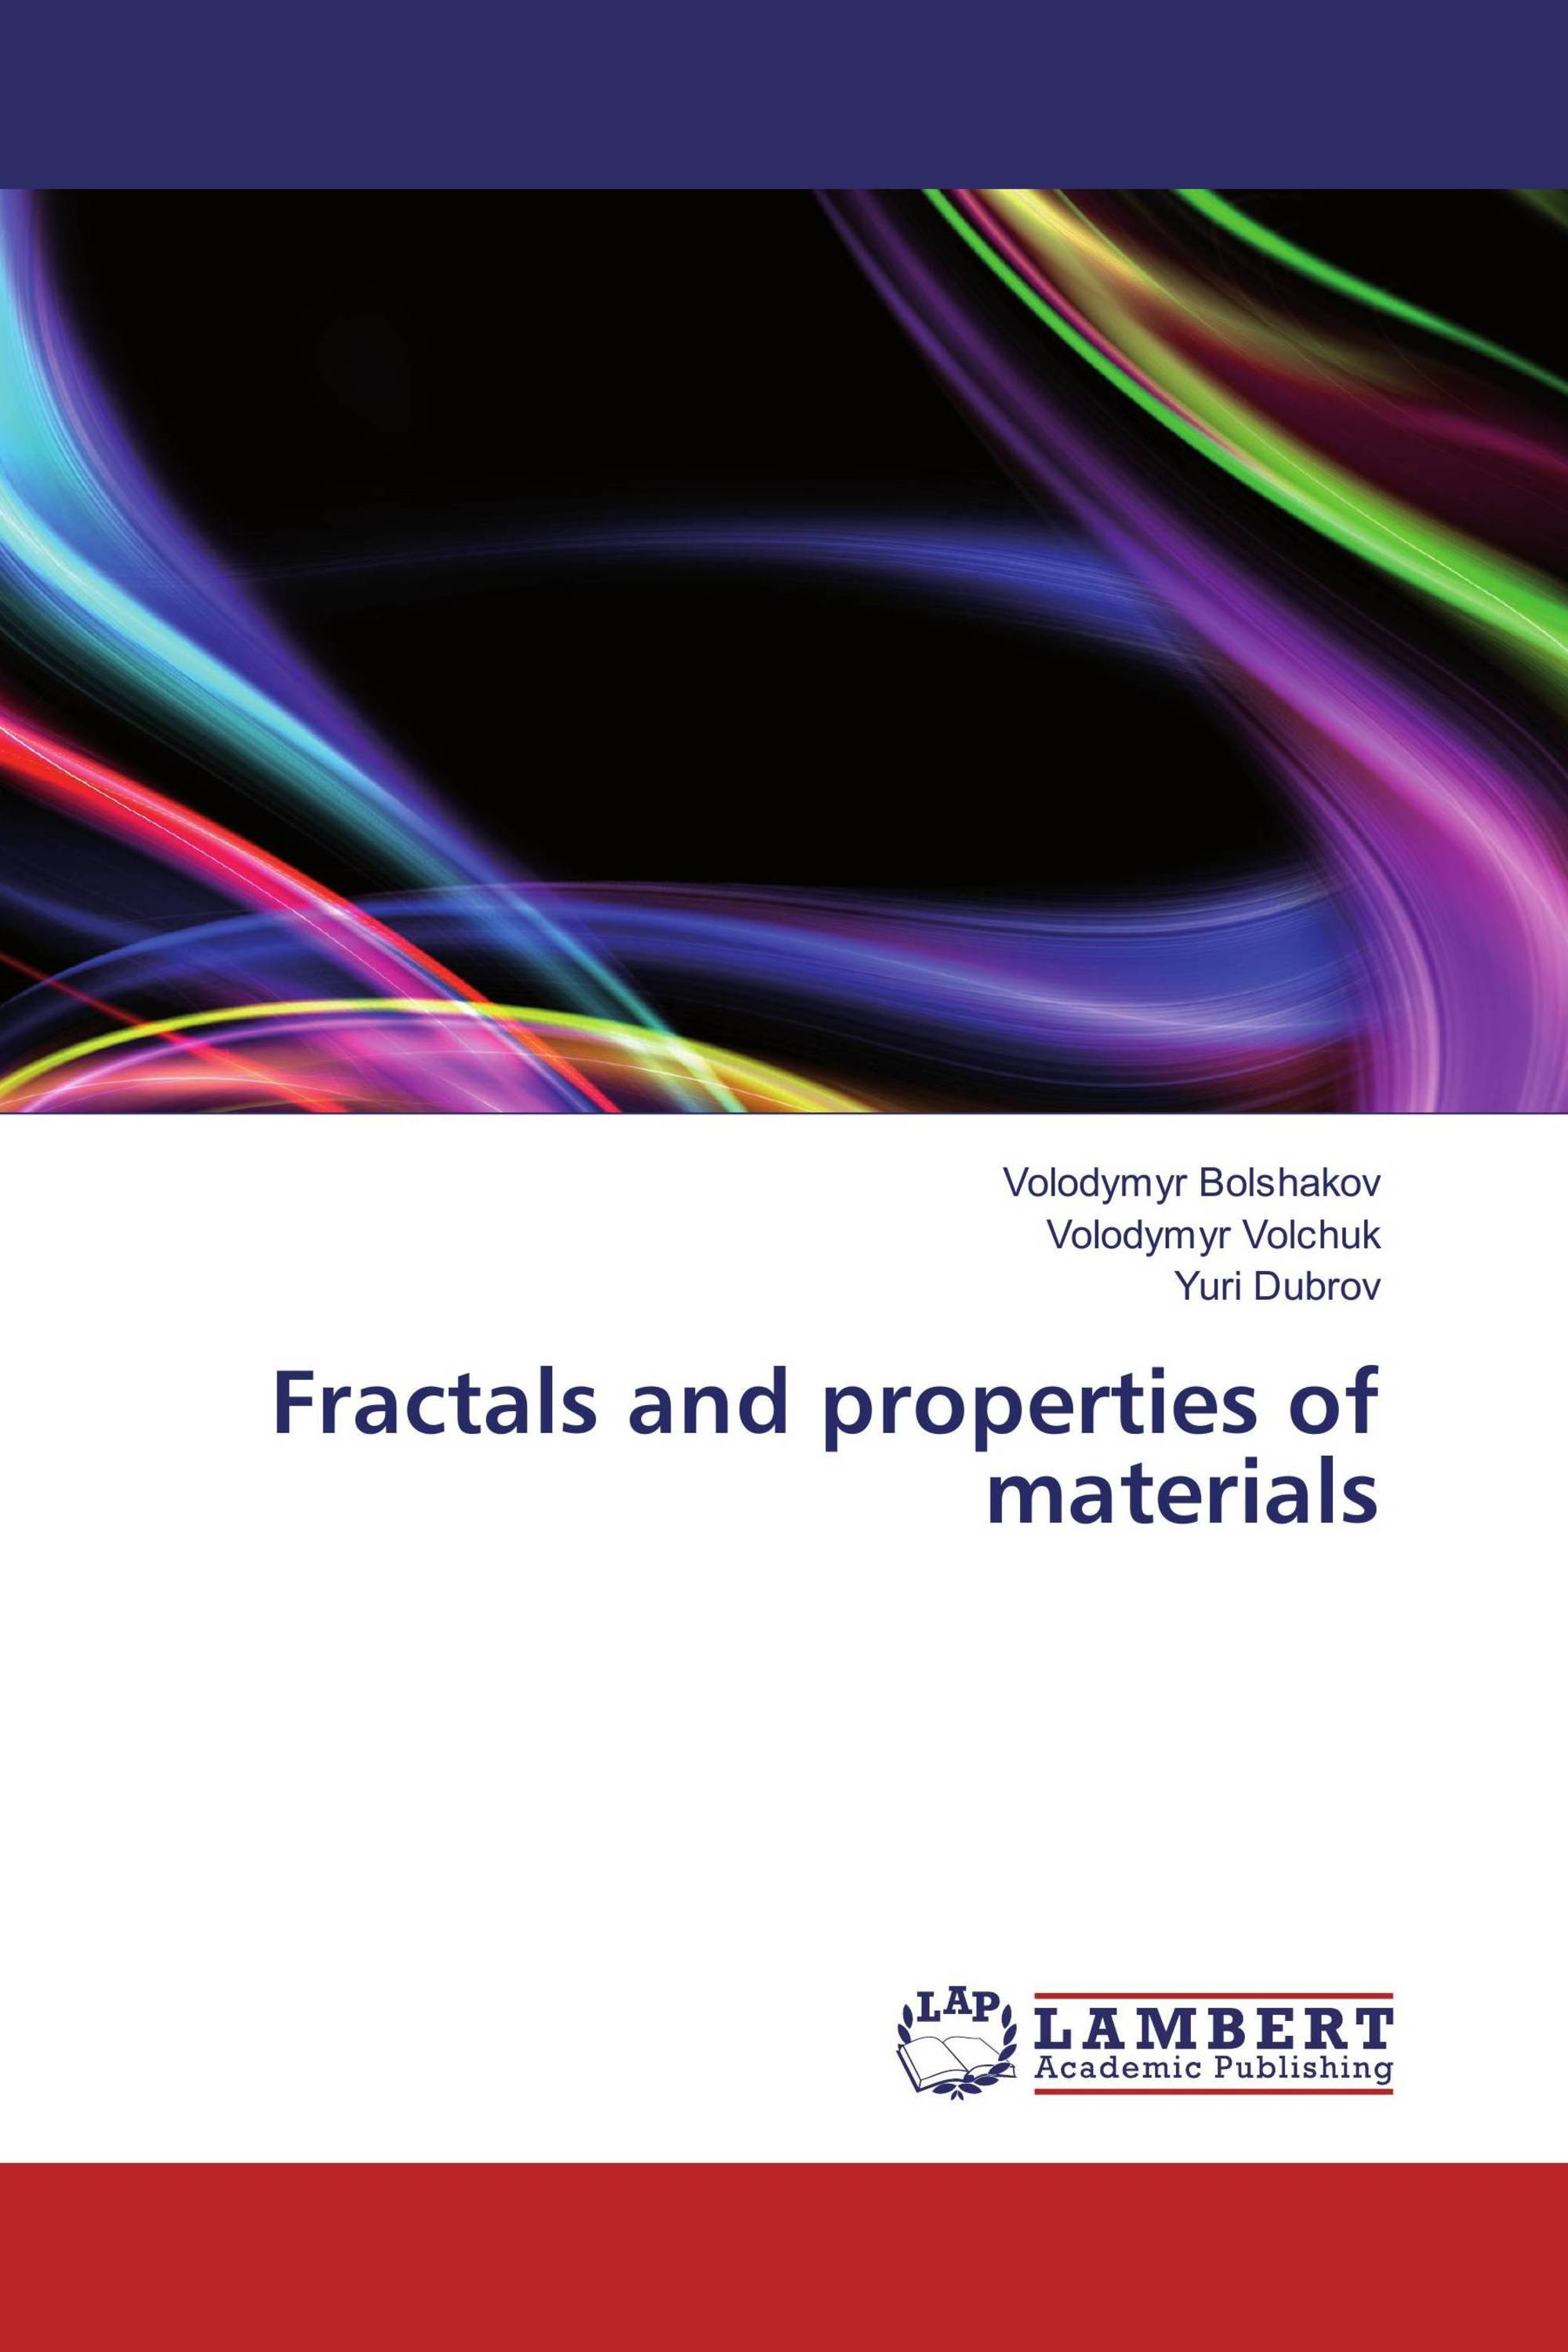 Fractals and properties of materials